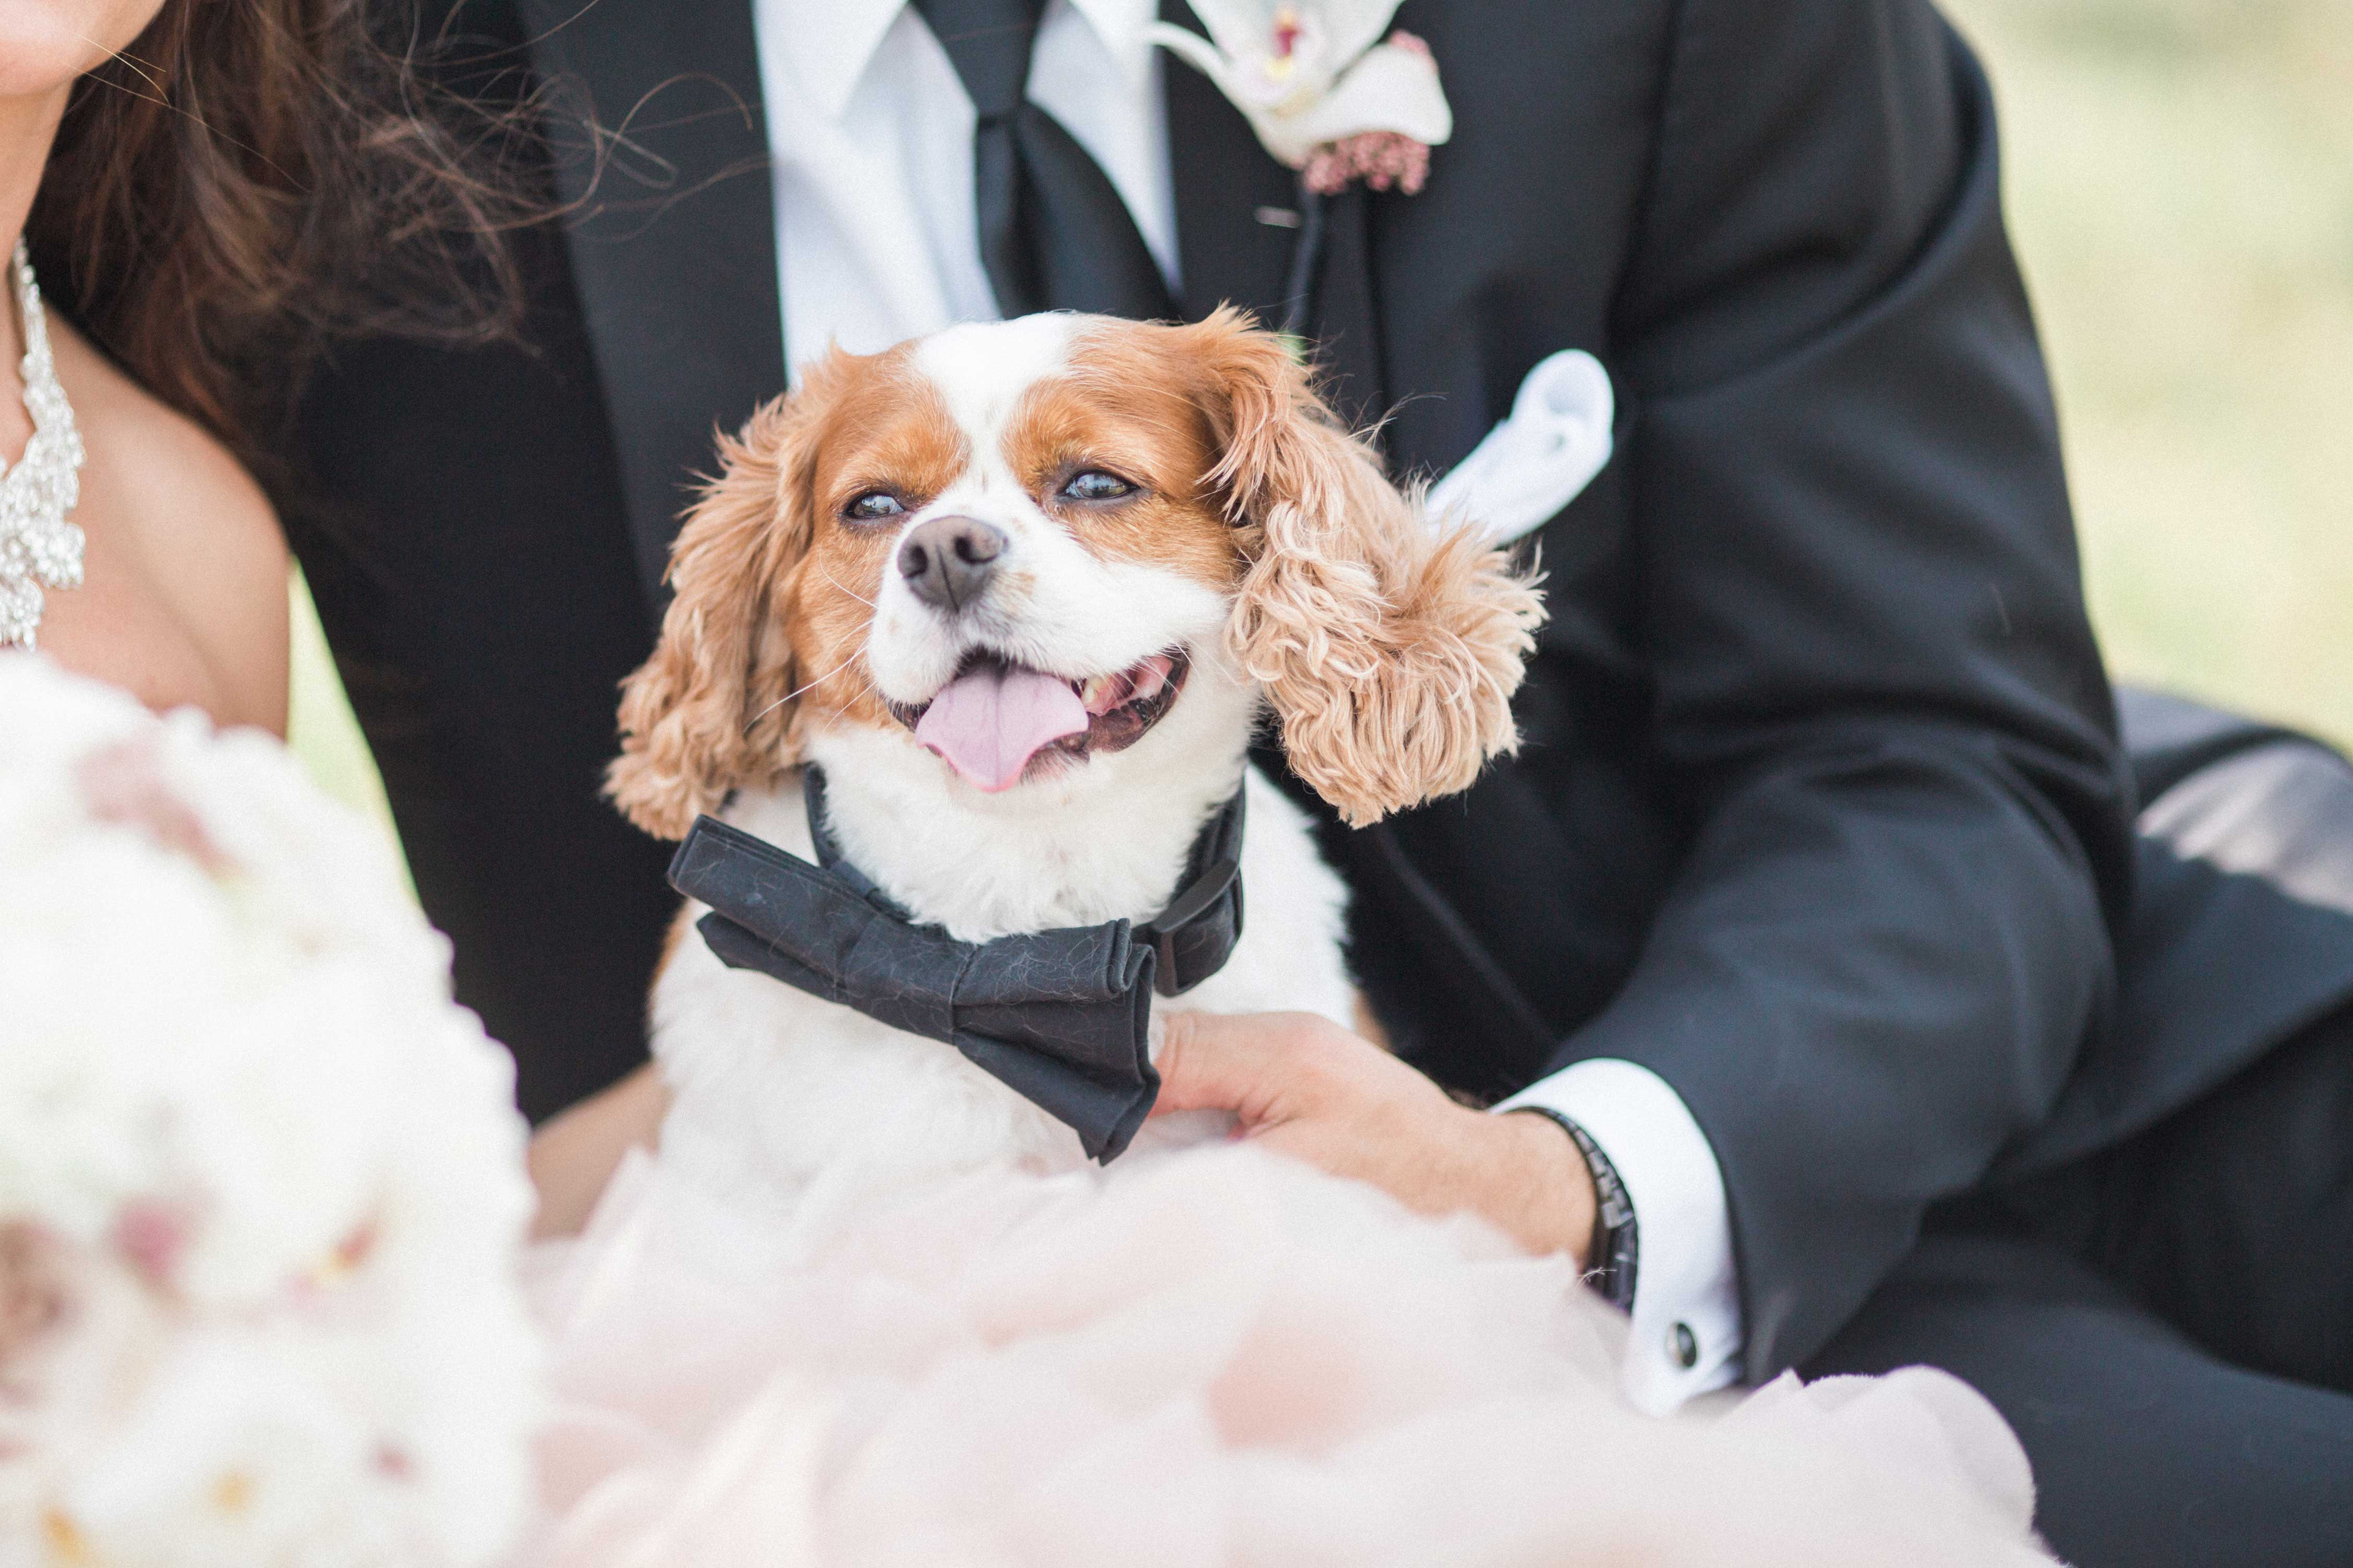 Cavalier King Charles dog puppy in audience of wedding ceremony